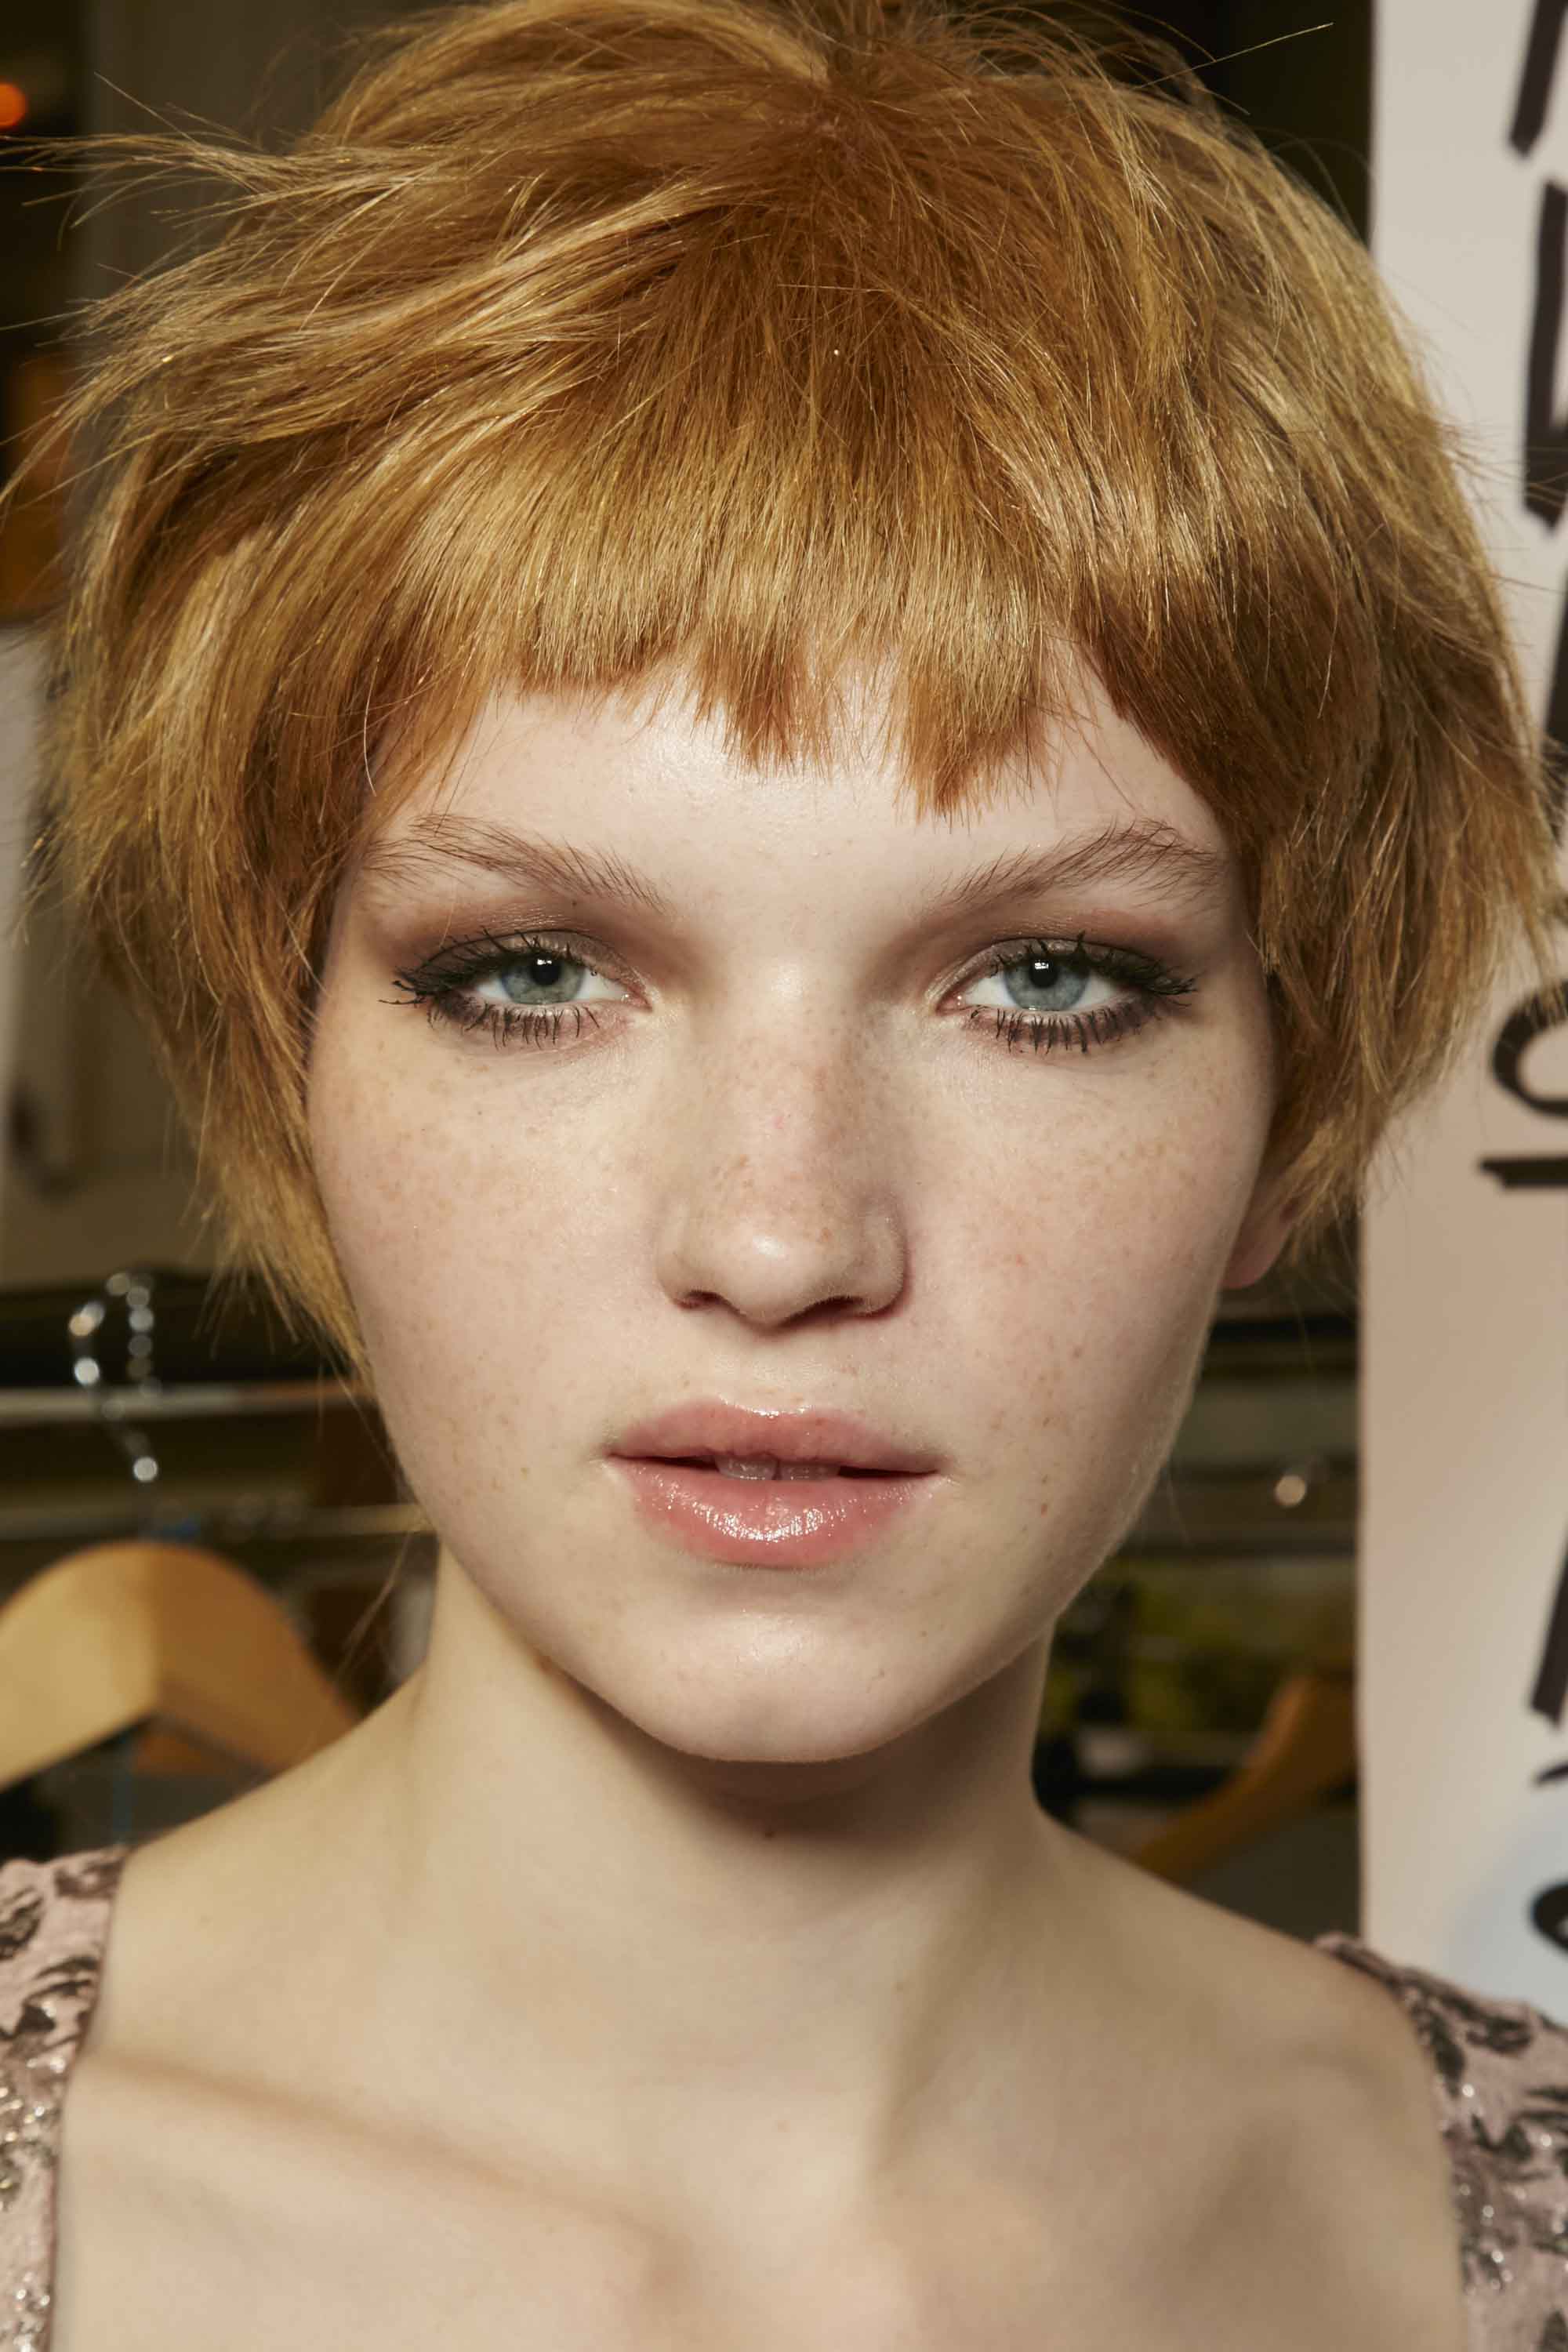 5 Cool Ways To Wear Short Bangs – Plus Need To Know Styling Tips Regarding Short Haircuts With Long Fringe (View 22 of 25)